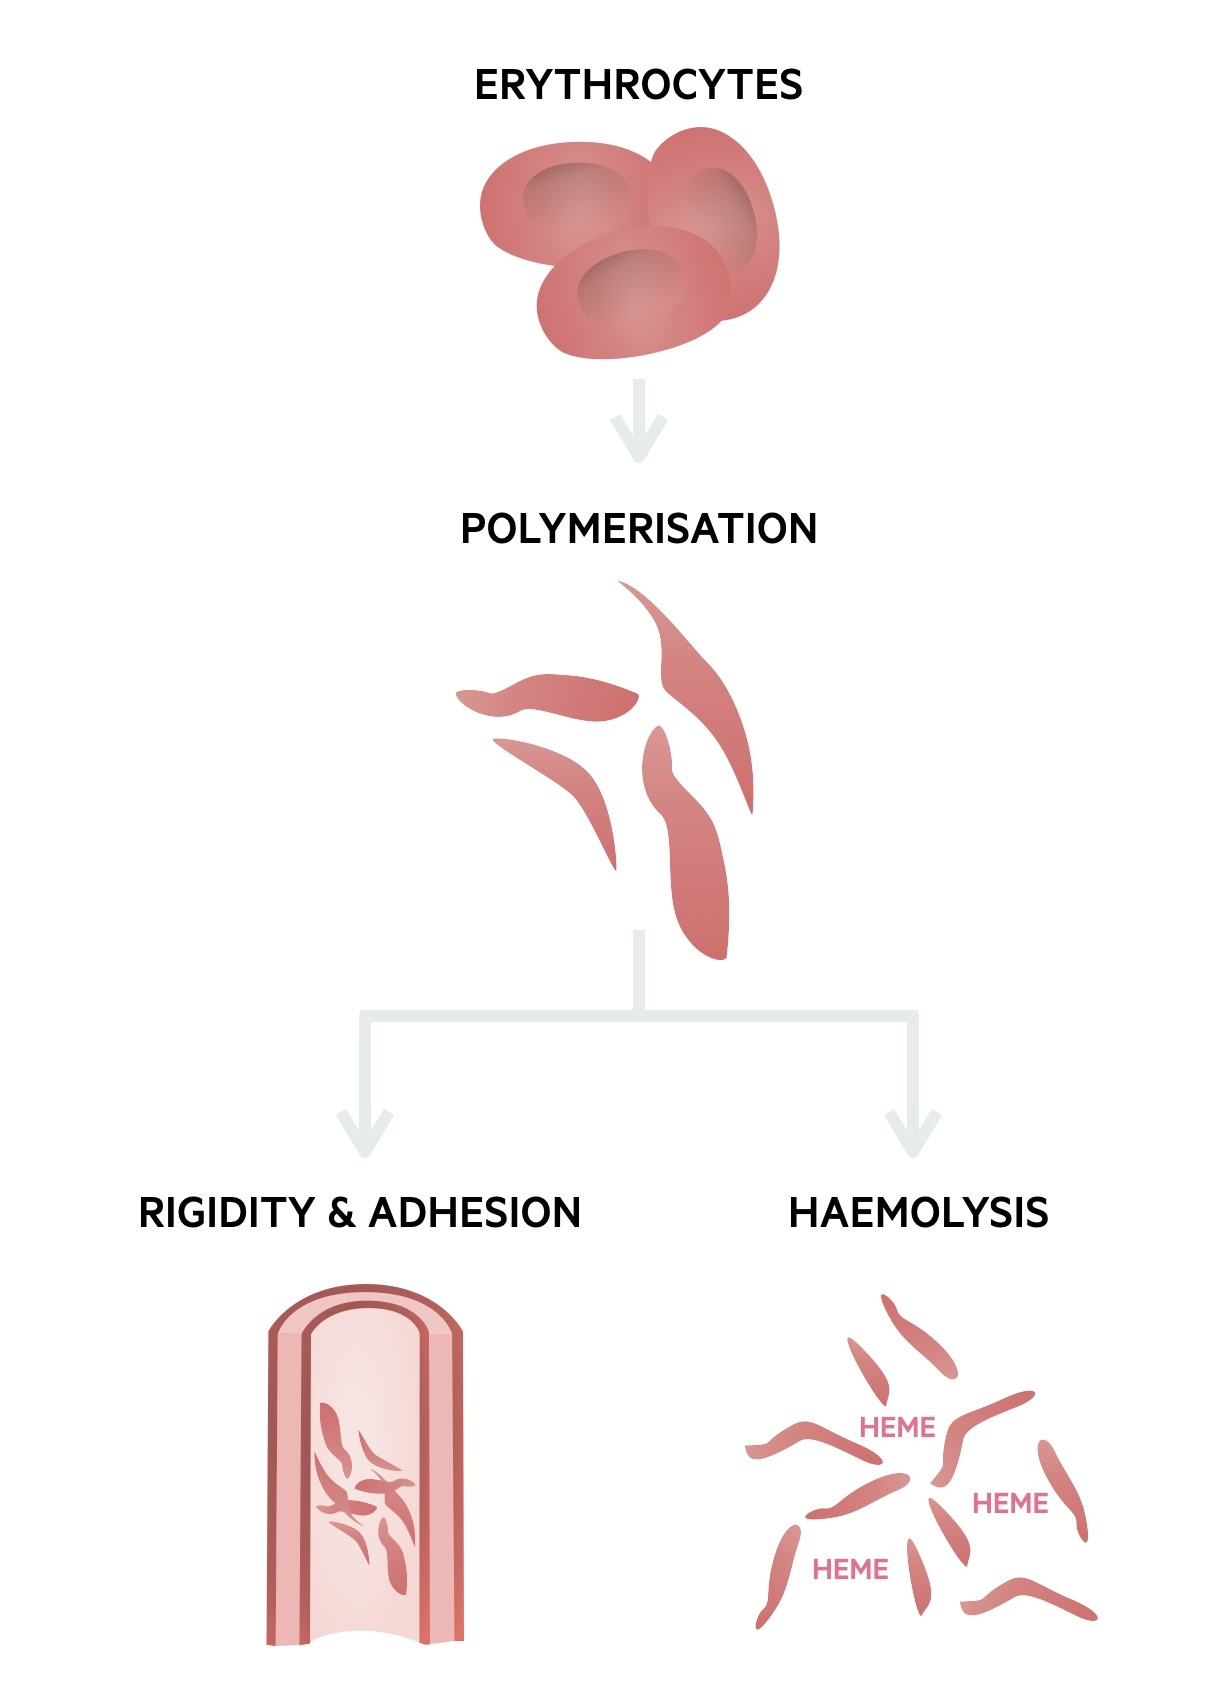 Sickle cell disease pathophysiology